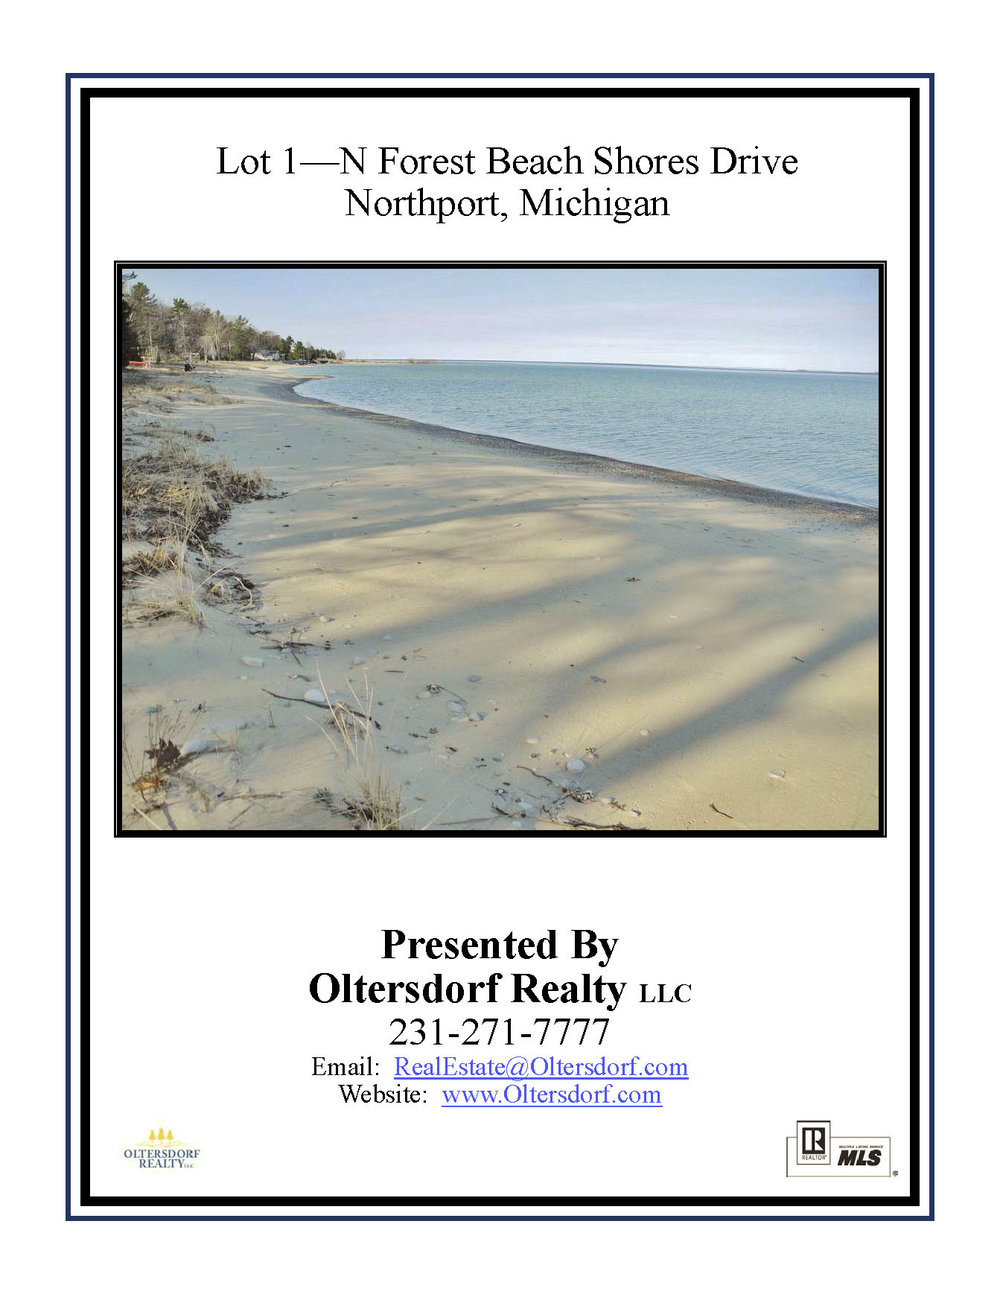 Lot 1 - N Forest Beach Shores, Northport – FOR SALE by Oltersdorf Realty LLC - Marketing Packet (1).jpg